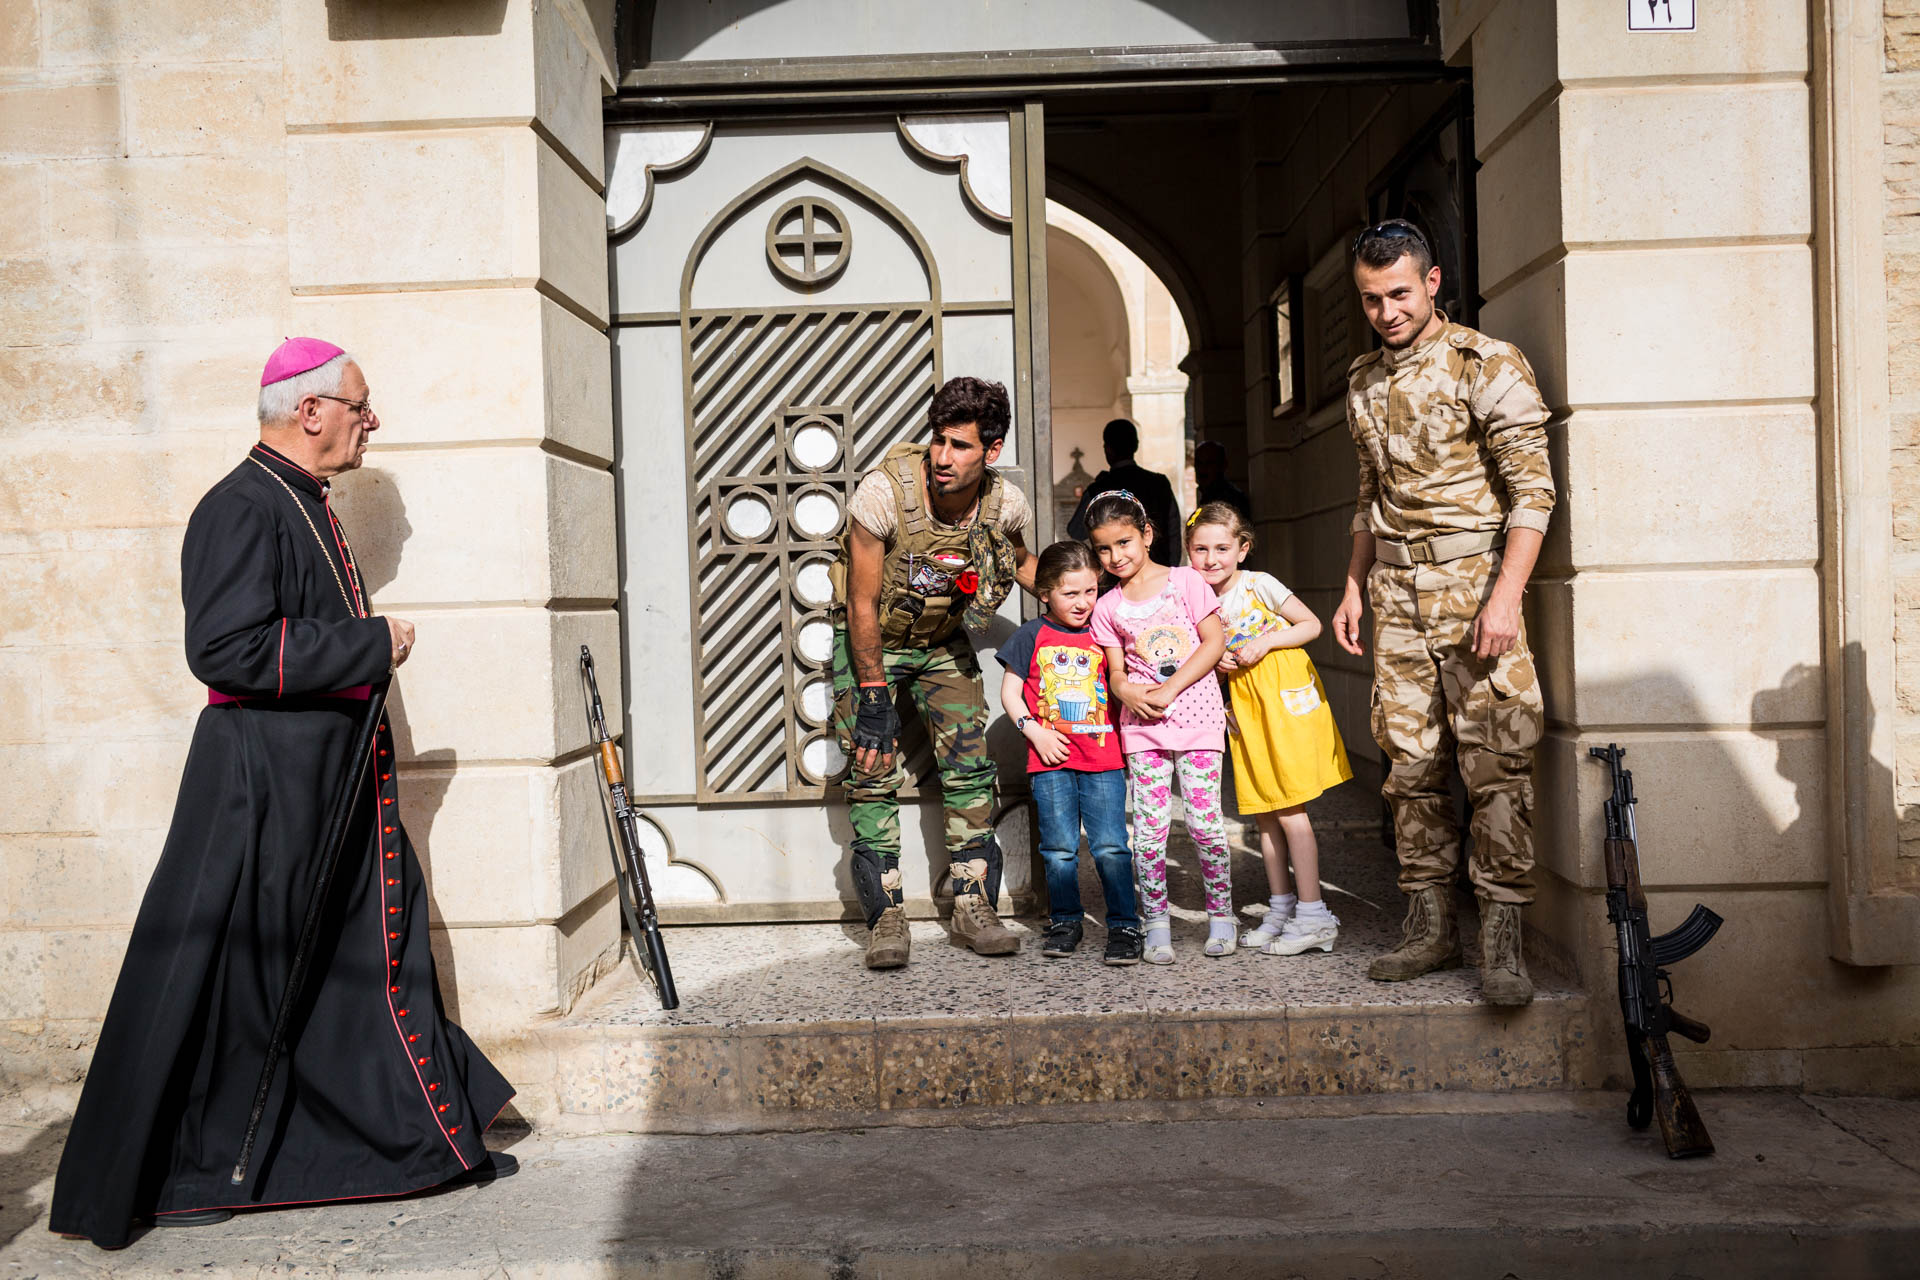 As Ronie and Sargon pose for a picture with a few local kids at the entrance of a church, a priest approaches. Alqosh has a very active religious community and its people have always been proud of their heritage.